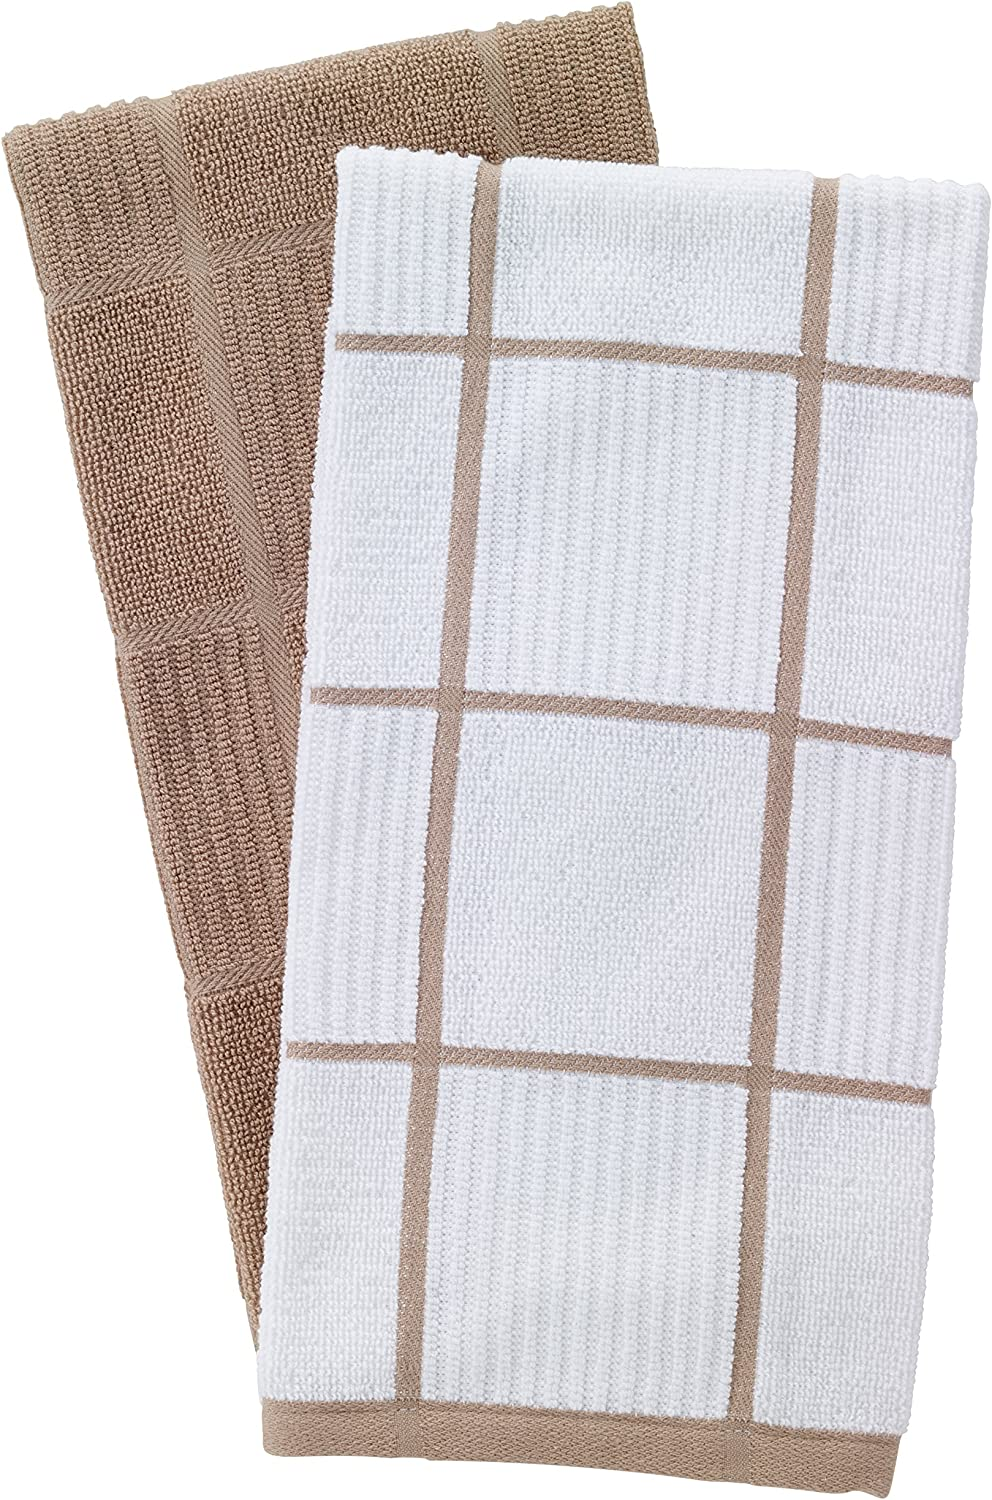 T-Fal Textiles 60959 2-Pack Solid & Check Parquet Design 100-Percent Cotton Kitchen Dish Towel, Sand, Solid/Check-2 Pack